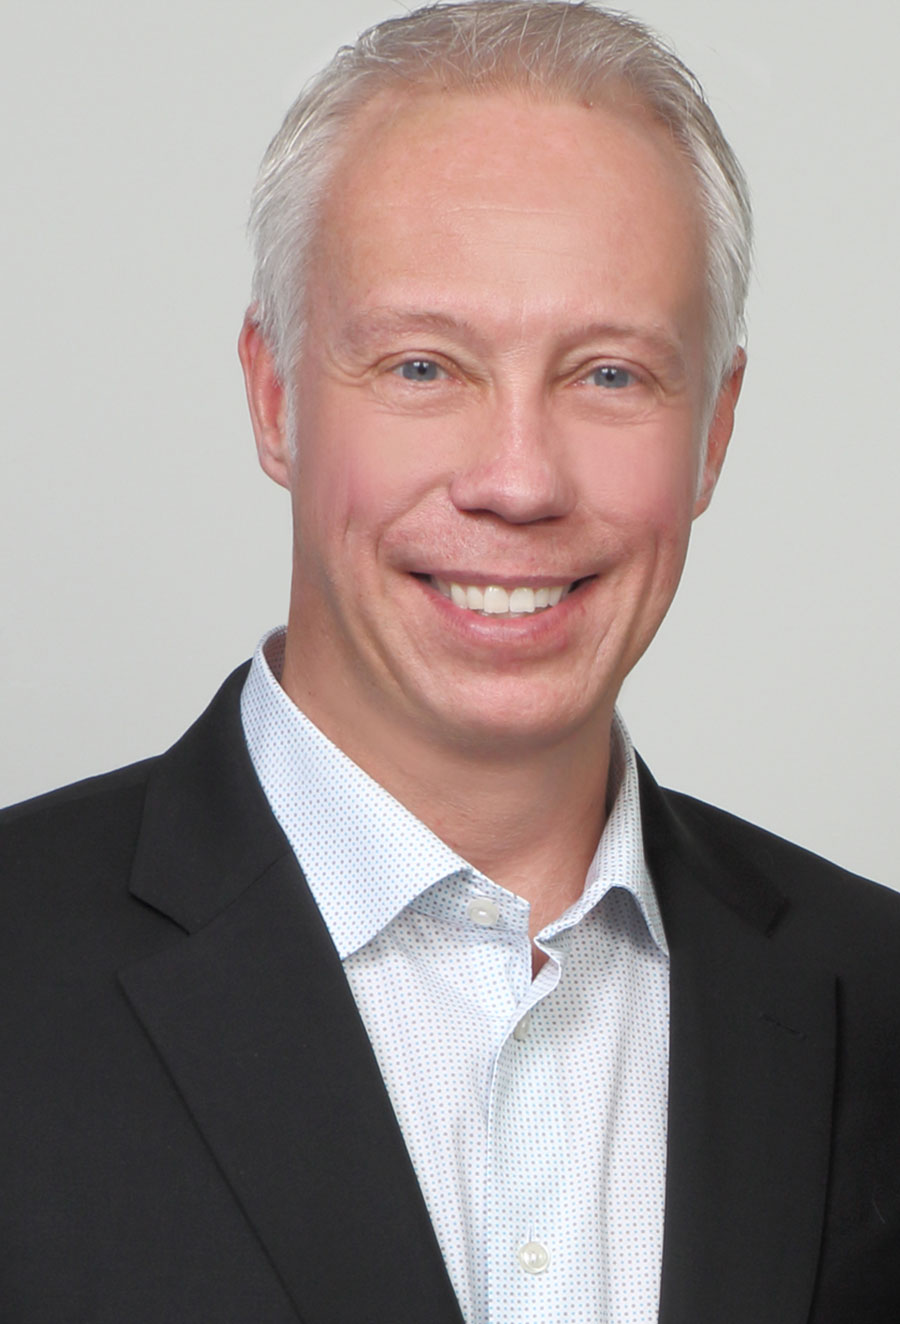 Eric Richards - Illinois Managing Broker & California Sales Person with Prairie Coast Real Estate Group